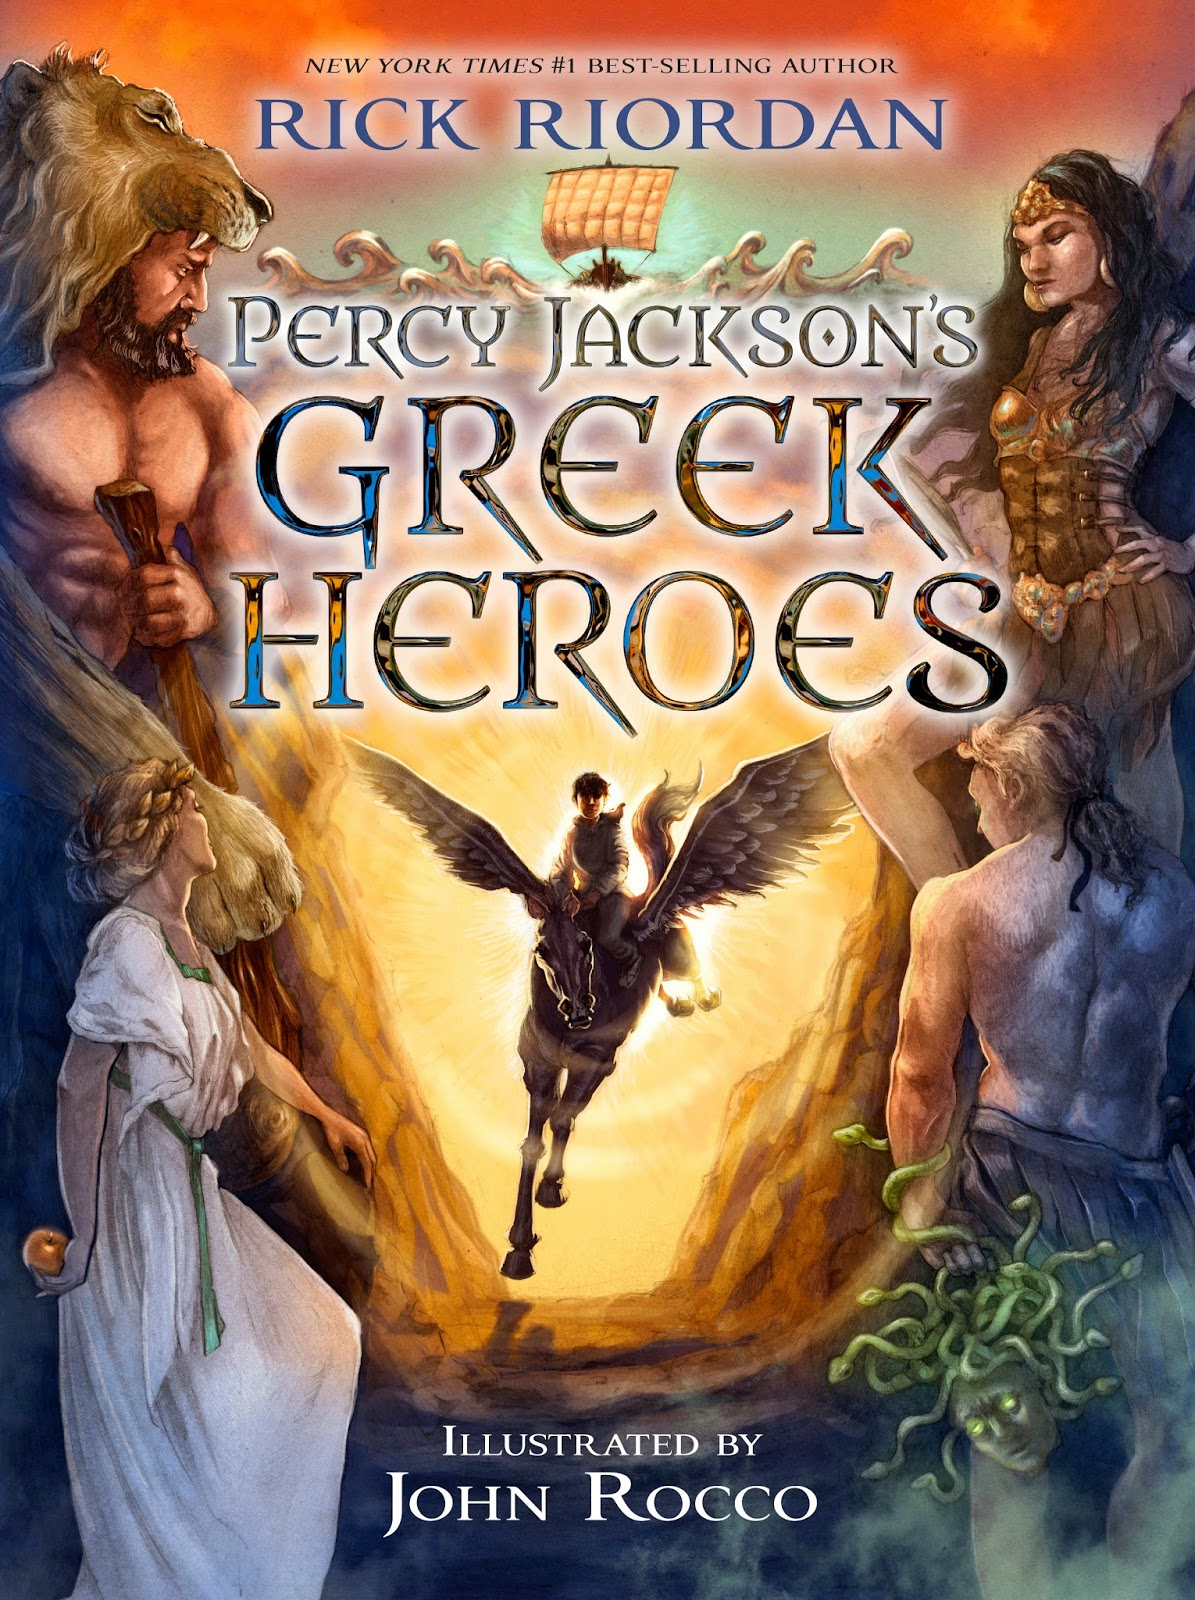 Percy Jackson's Greek Heroes Out Next Year, Details On New Norse Series